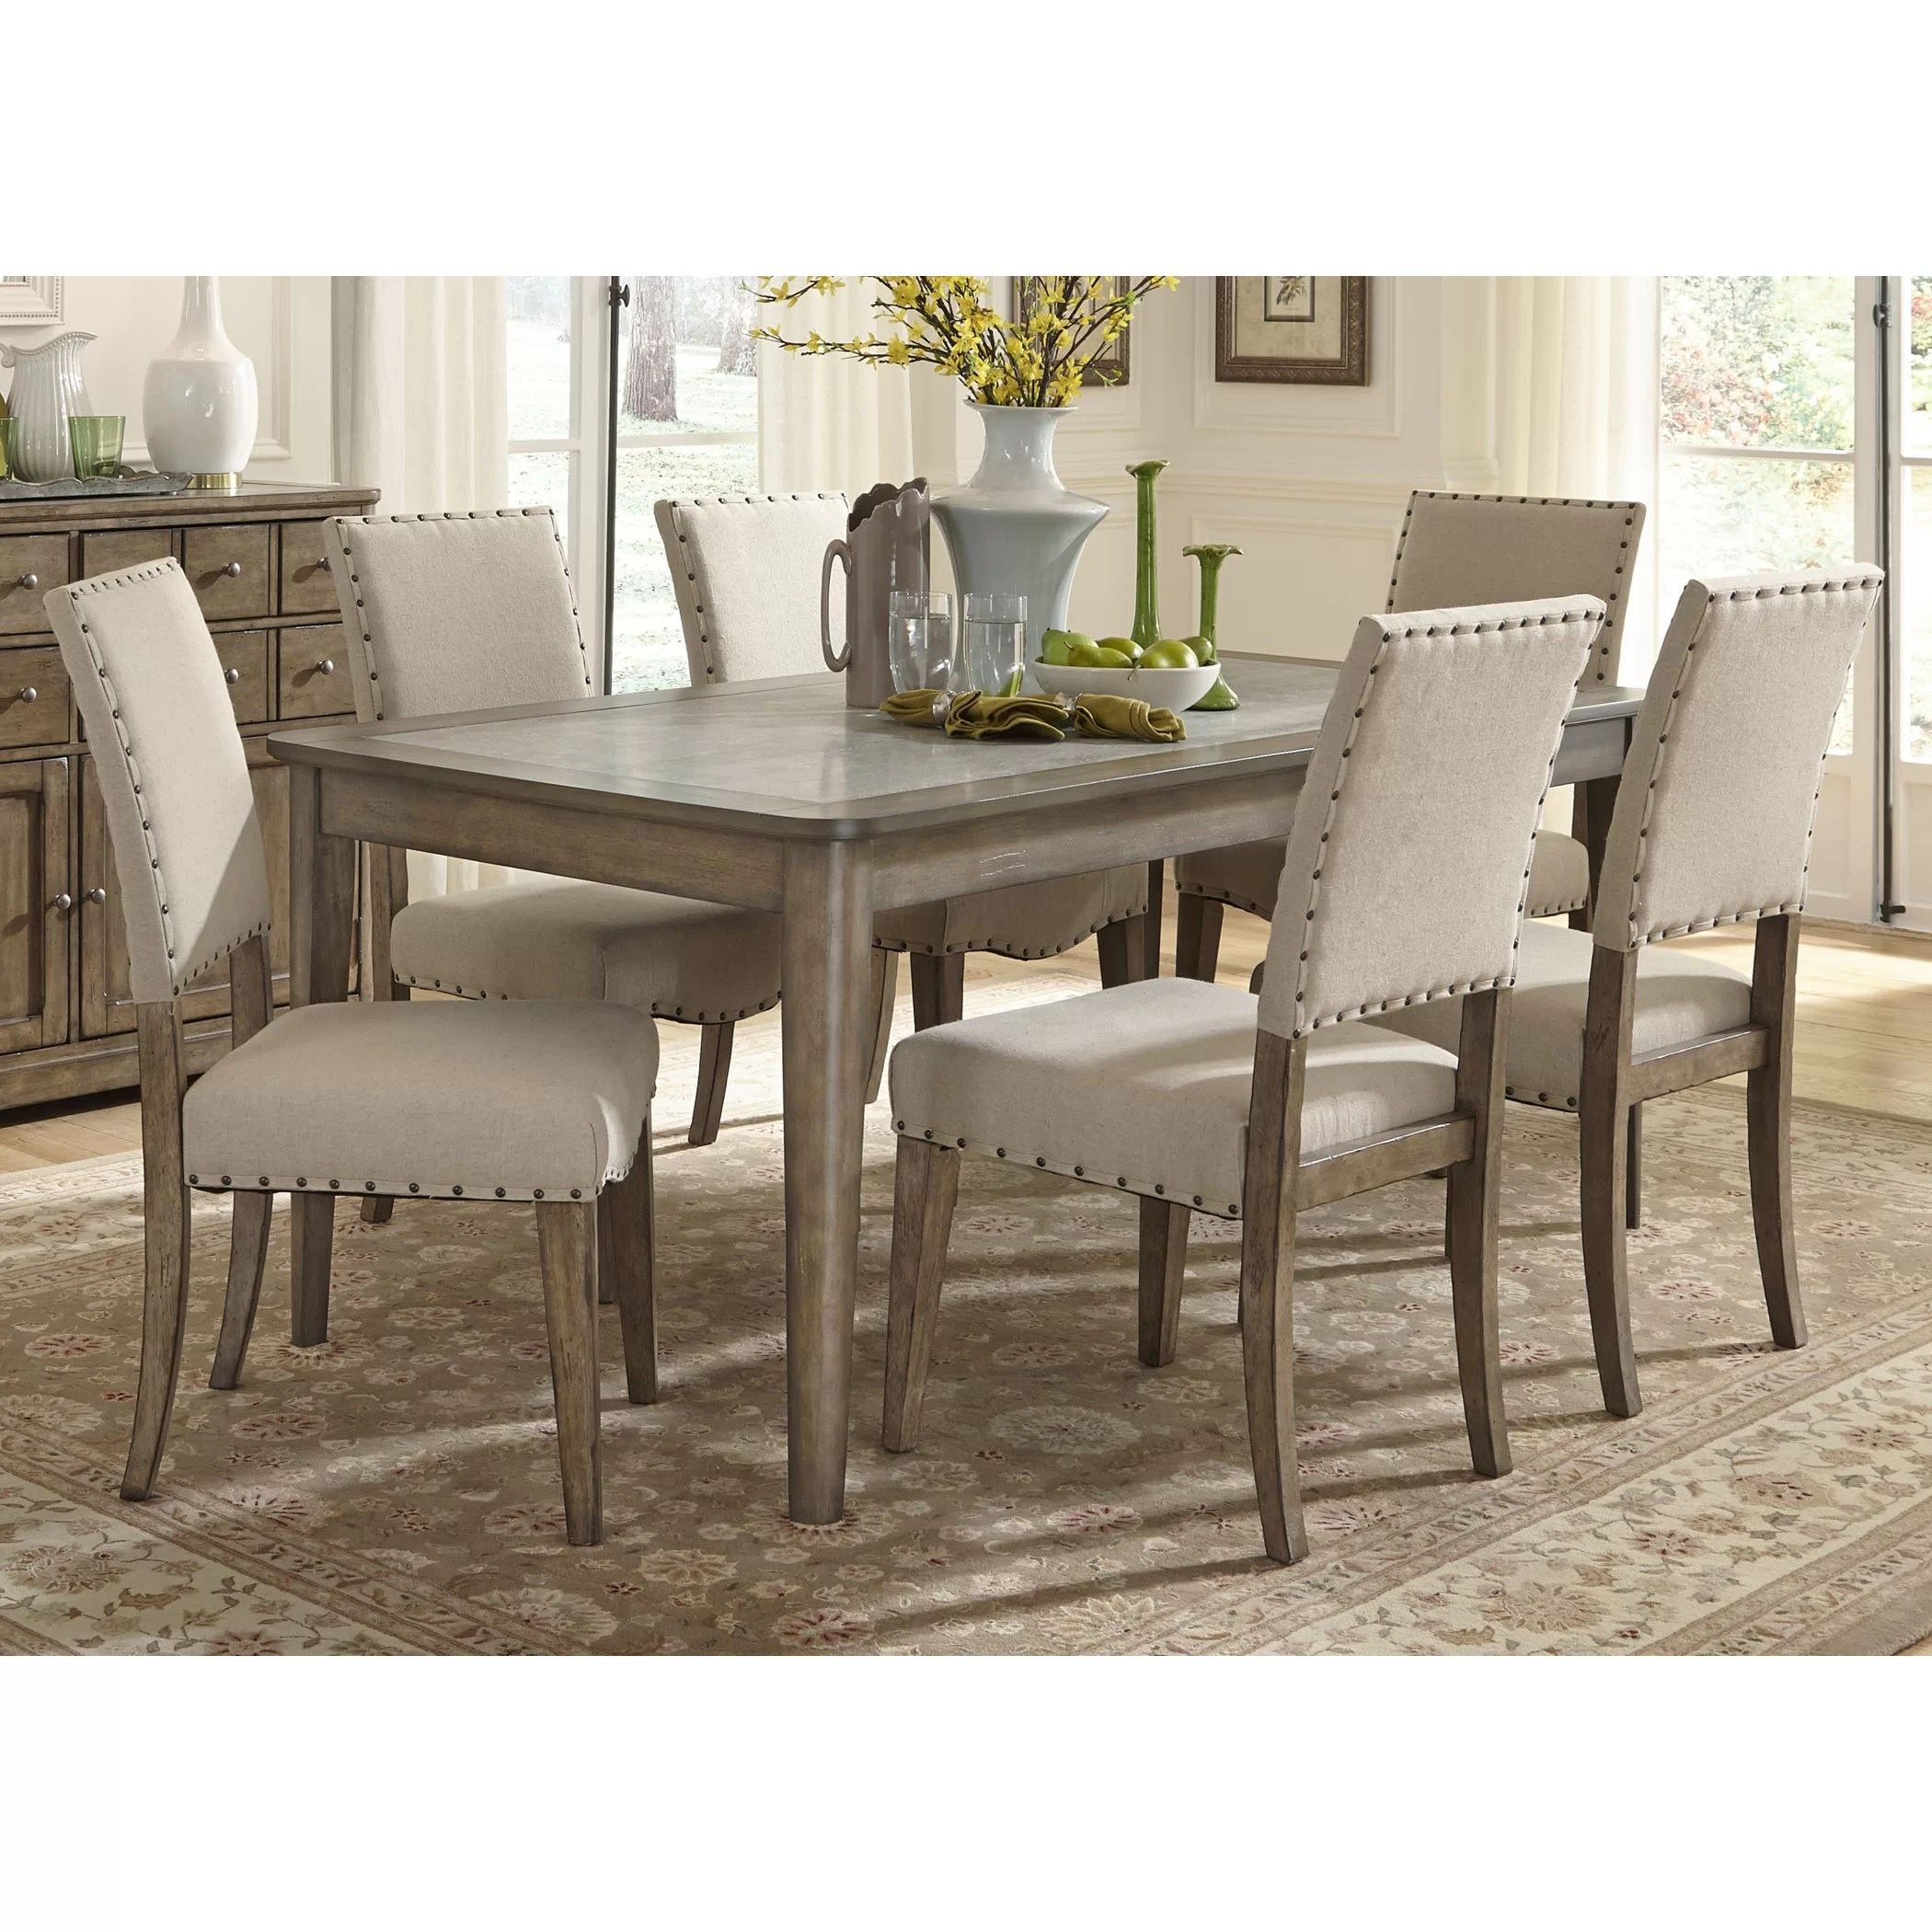 Wayfair Dining Chairs Liberty Furniture 7 Piece Dining Set And Reviews Wayfair